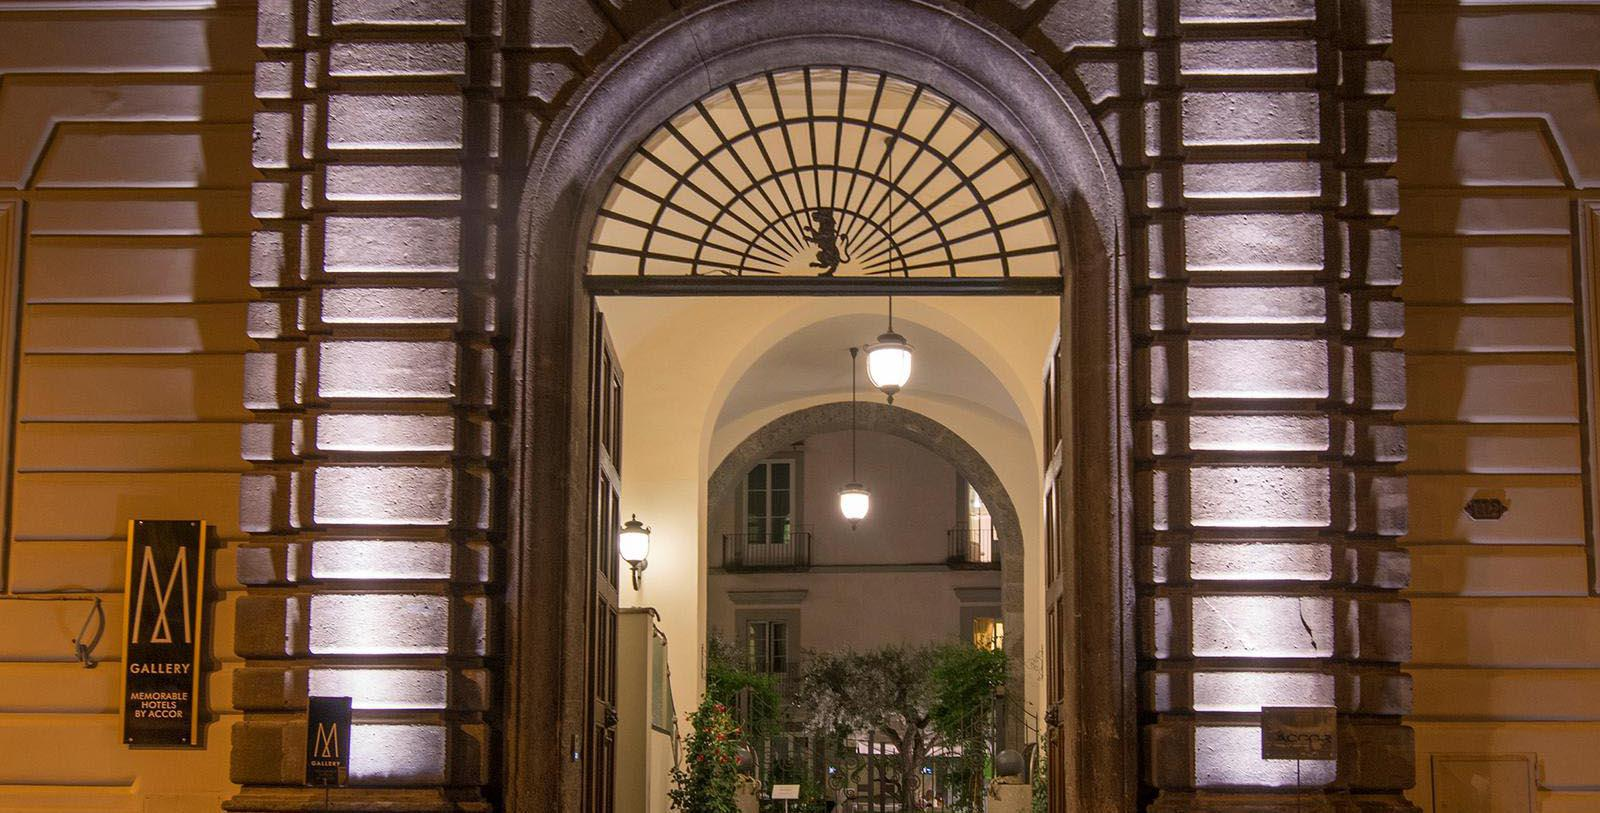 Image of Hotel Entrance Palazzo Caracciolo Napoli - MGallery by Sofitel, 1584, Member of Historic Hotels Worldwide, in Naples, Italy, Overview